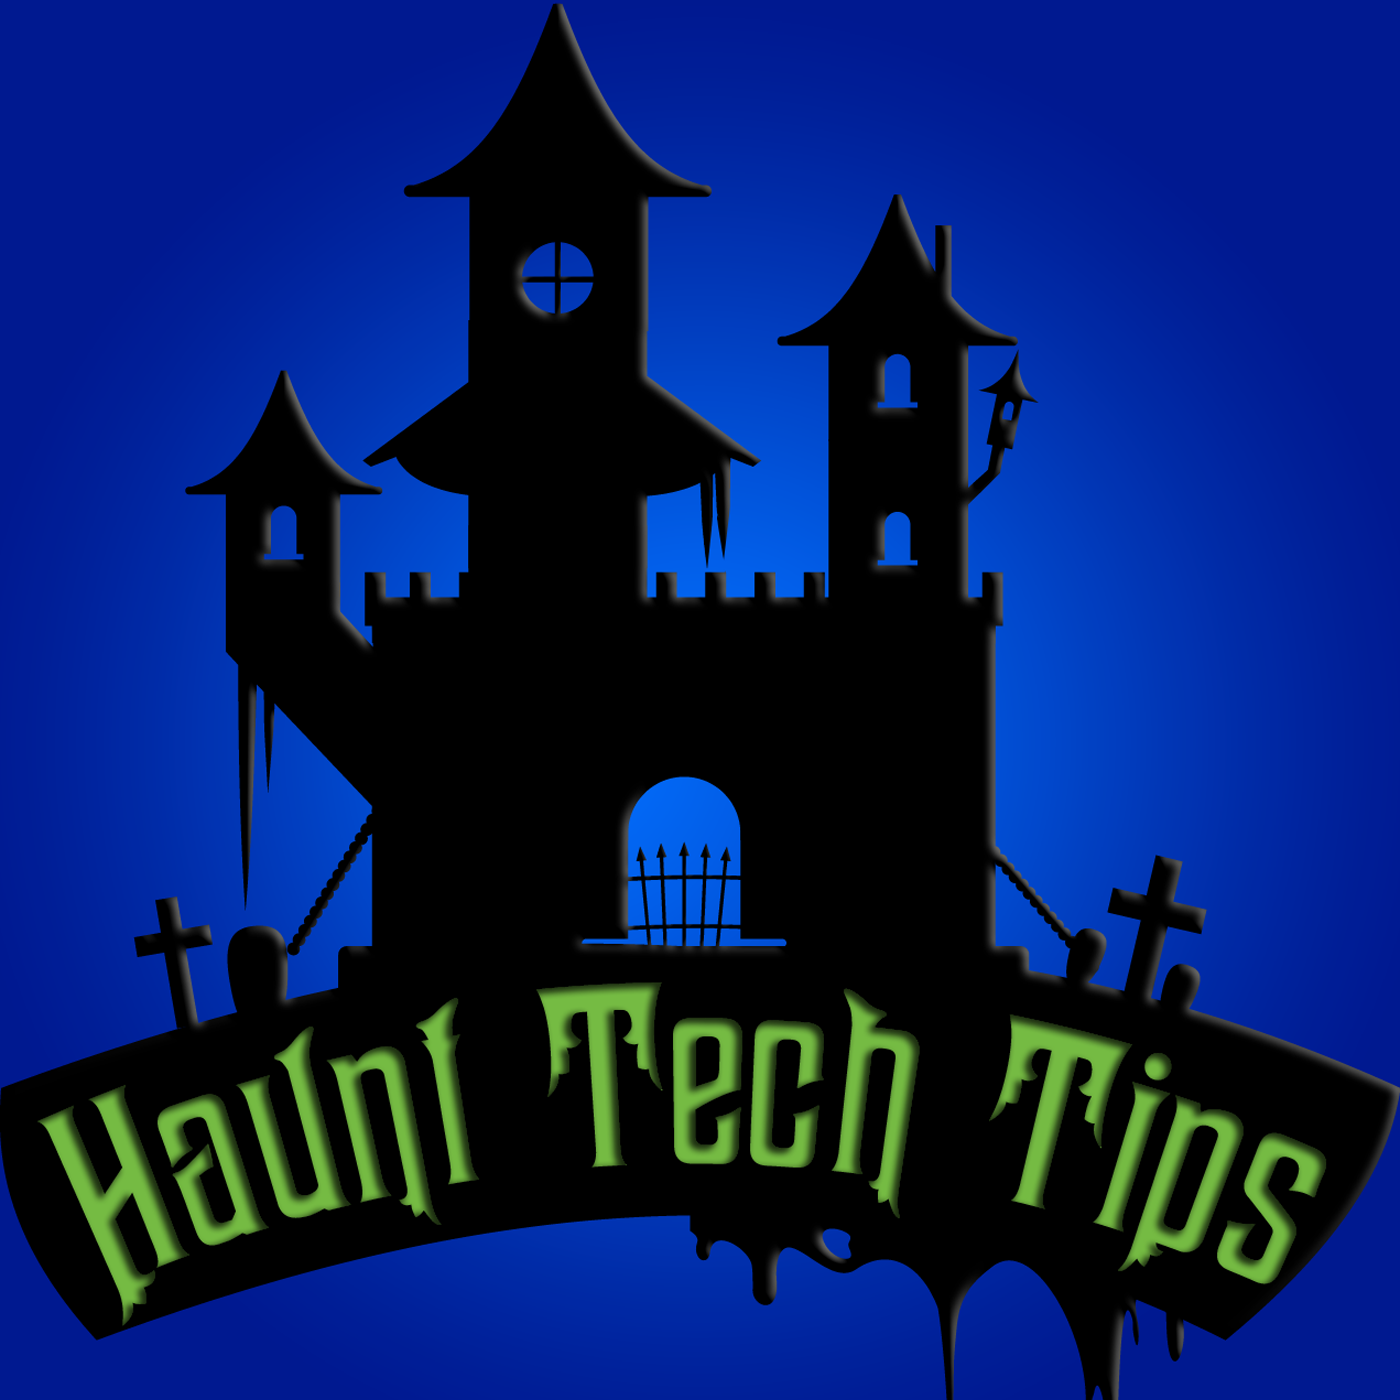 Haunt Tech Tips